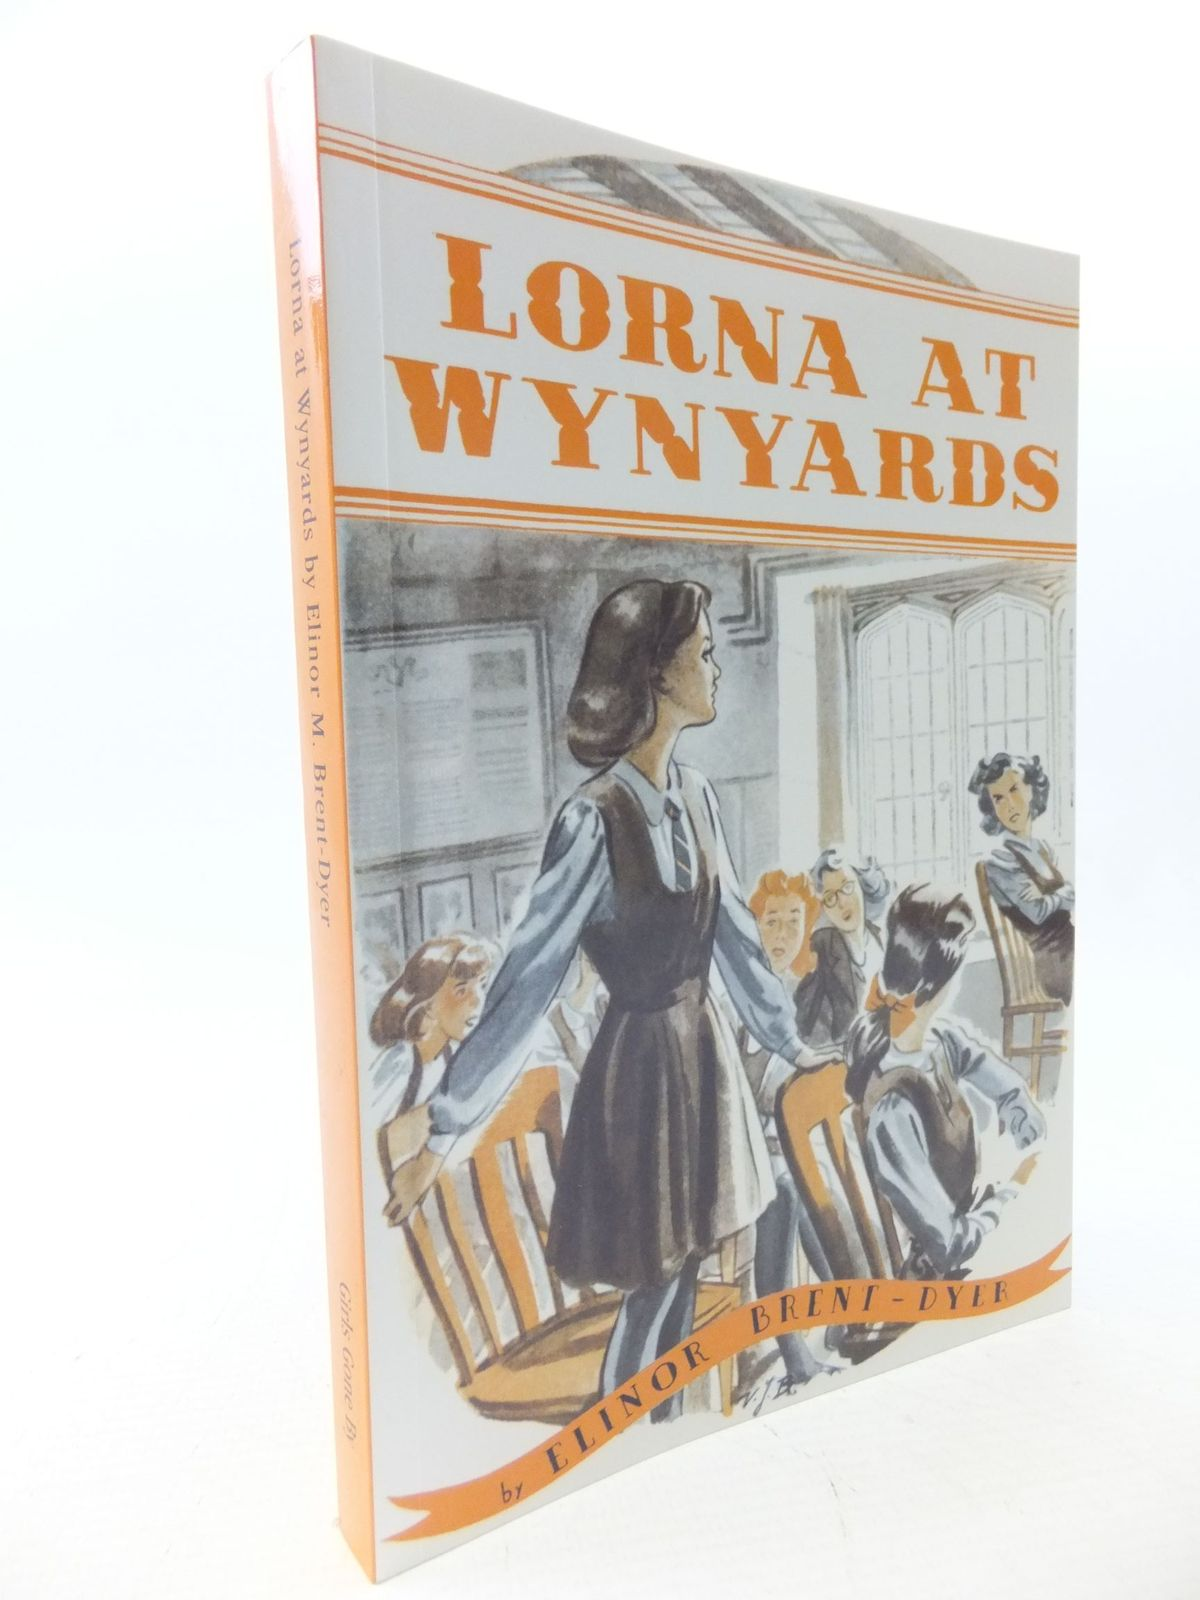 Photo of LORNA AT WYNYARDS written by Brent-Dyer, Elinor M. published by Girls Gone By (STOCK CODE: 1710764)  for sale by Stella & Rose's Books